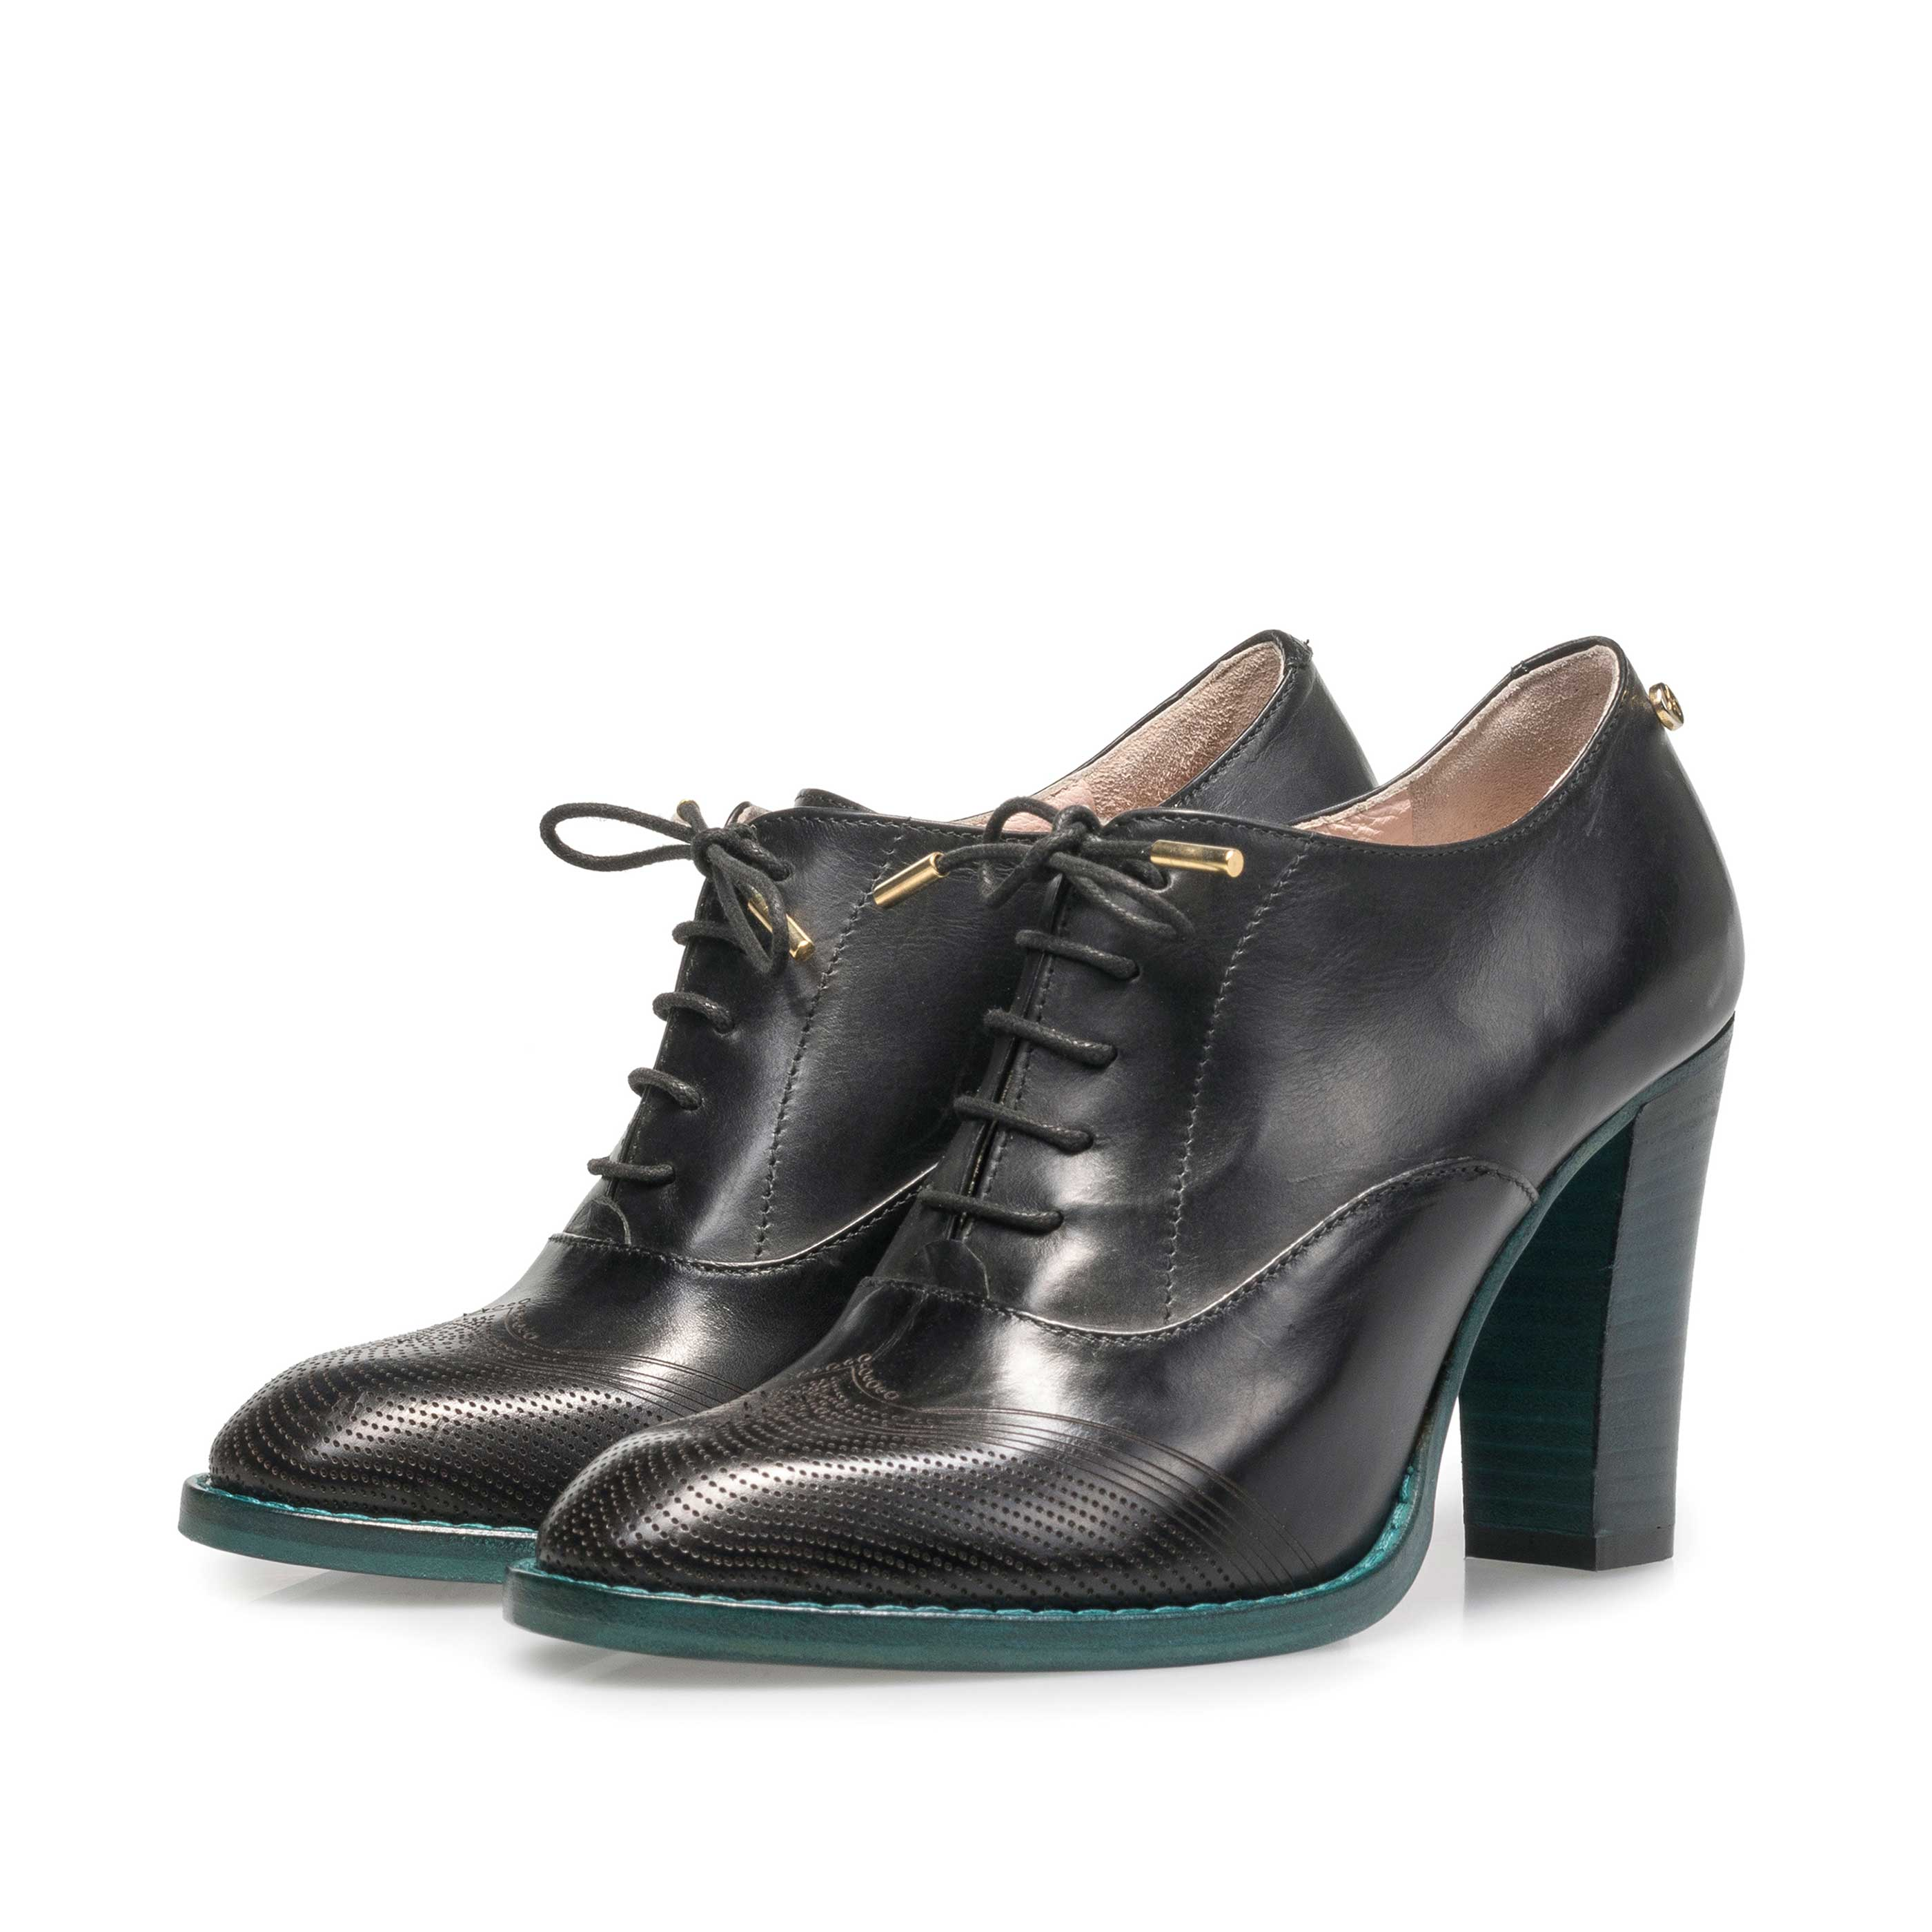 85810/00 - Black calf leather heeled derby